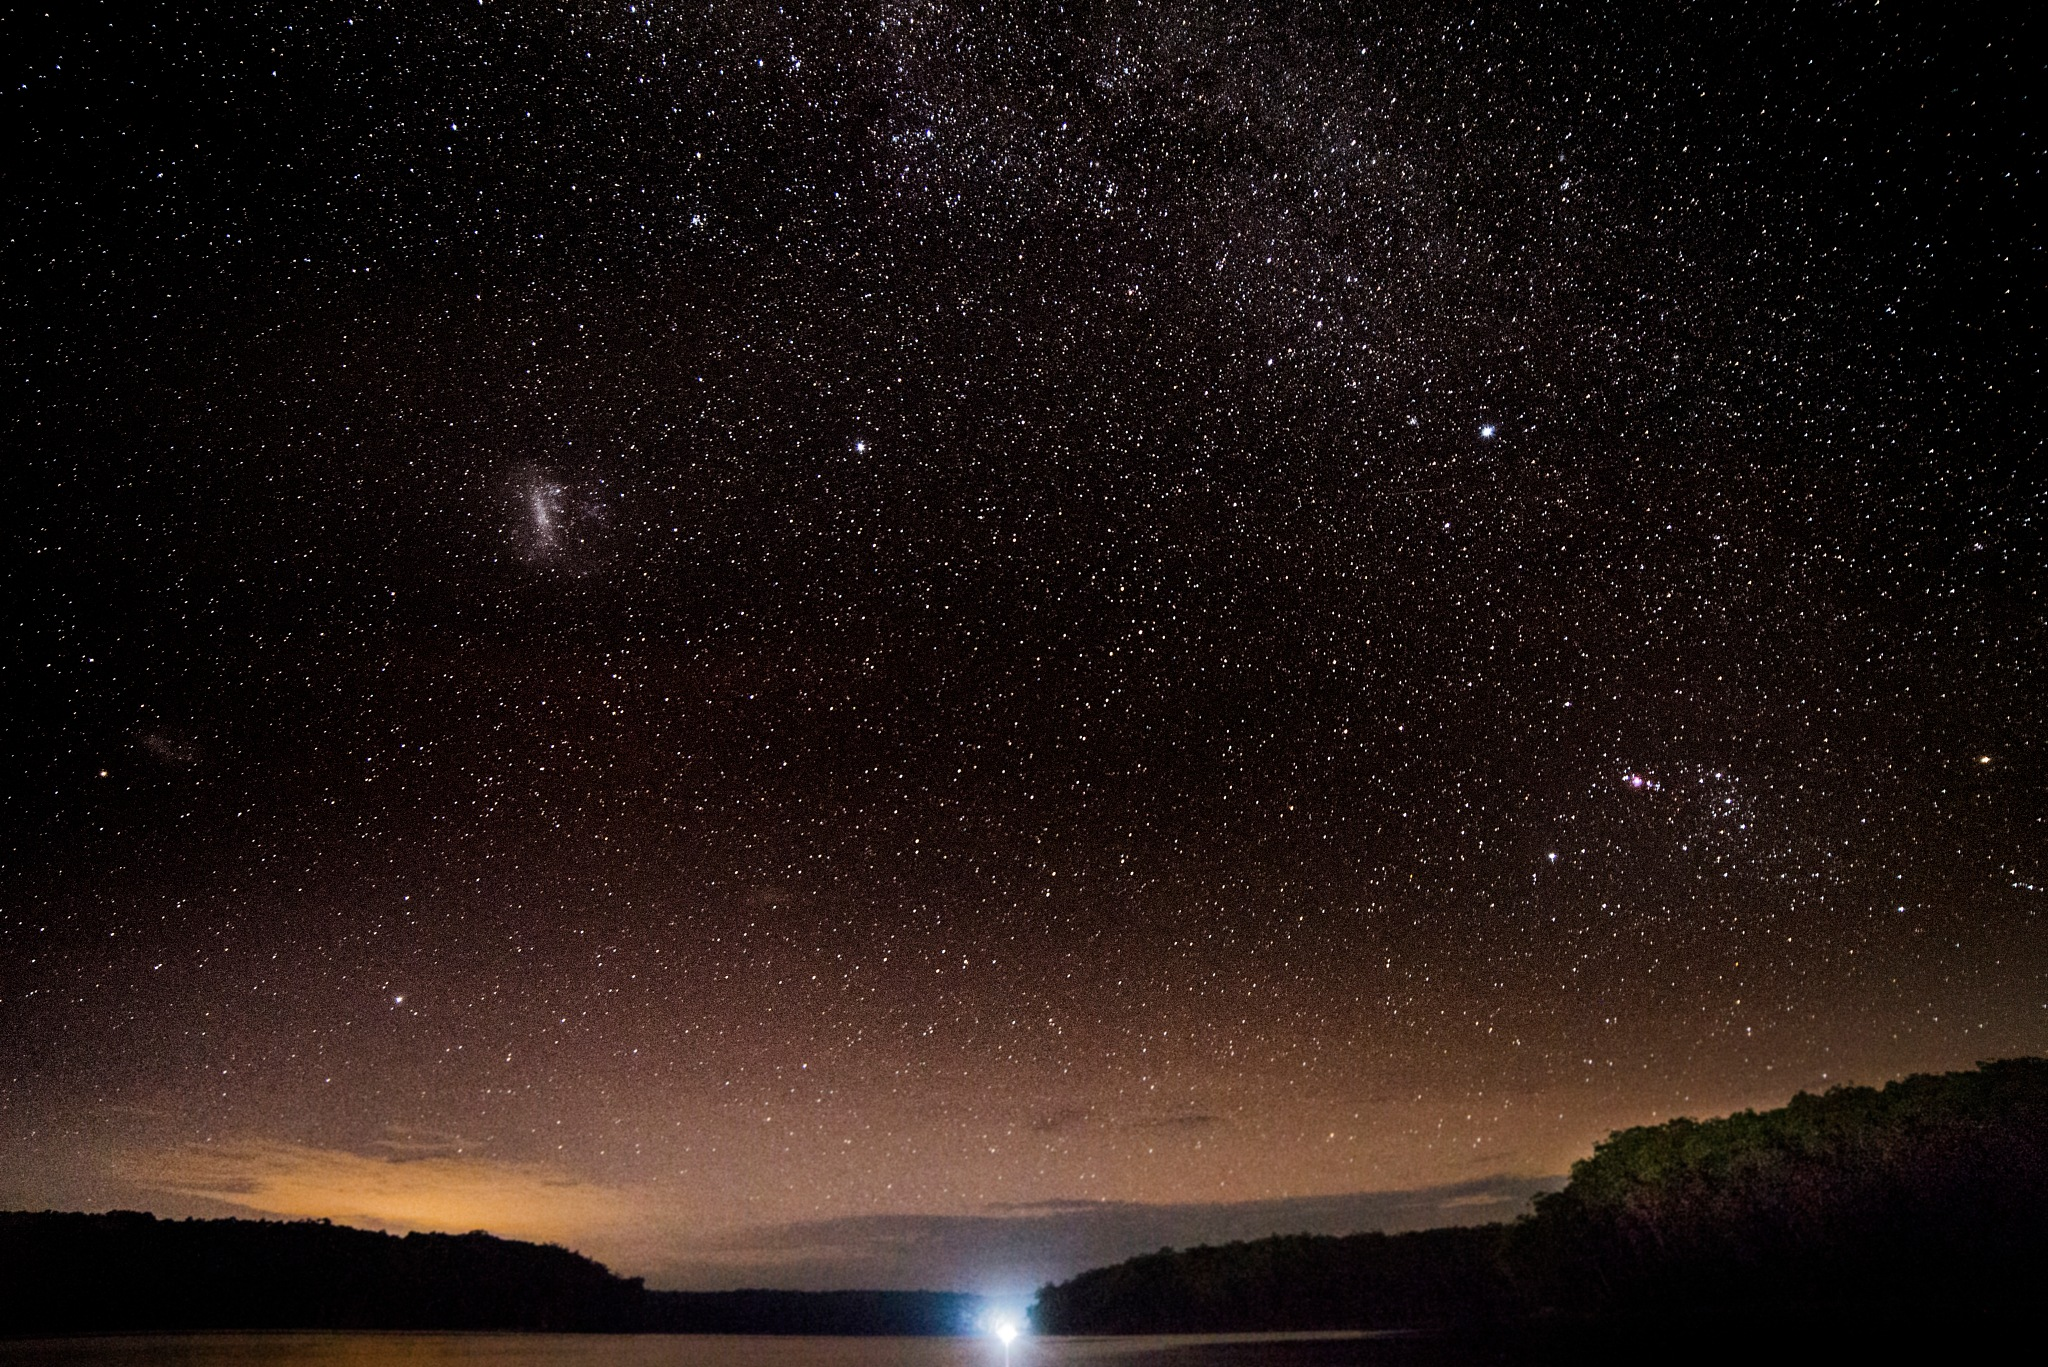 Aussie Lake with Orion Nebulae and Magellanic Clouds by Graham Levi